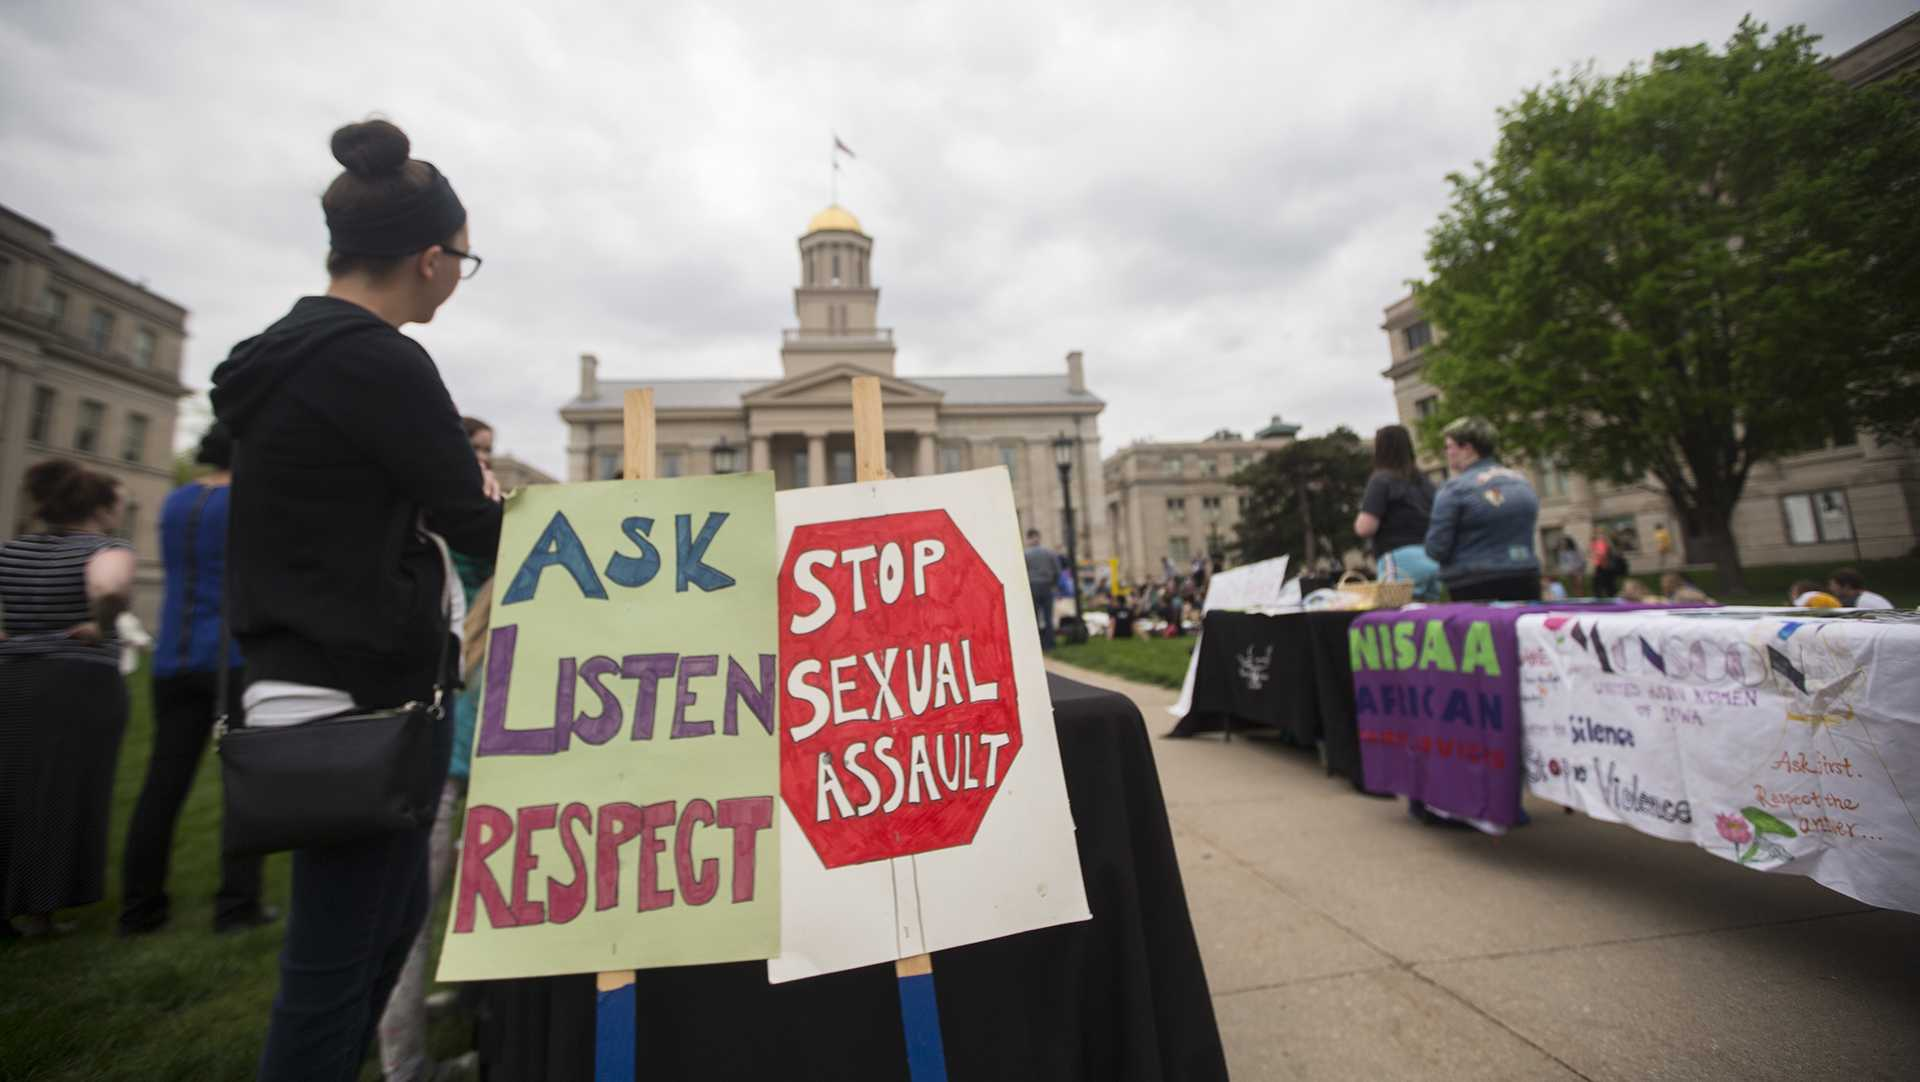 Community members participate in a march for Take Back the Night on Tuesday, April 25, 2017. Take Back the Night was a sexual assault awareness event. (The Daily Iowan/Joseph Cress)